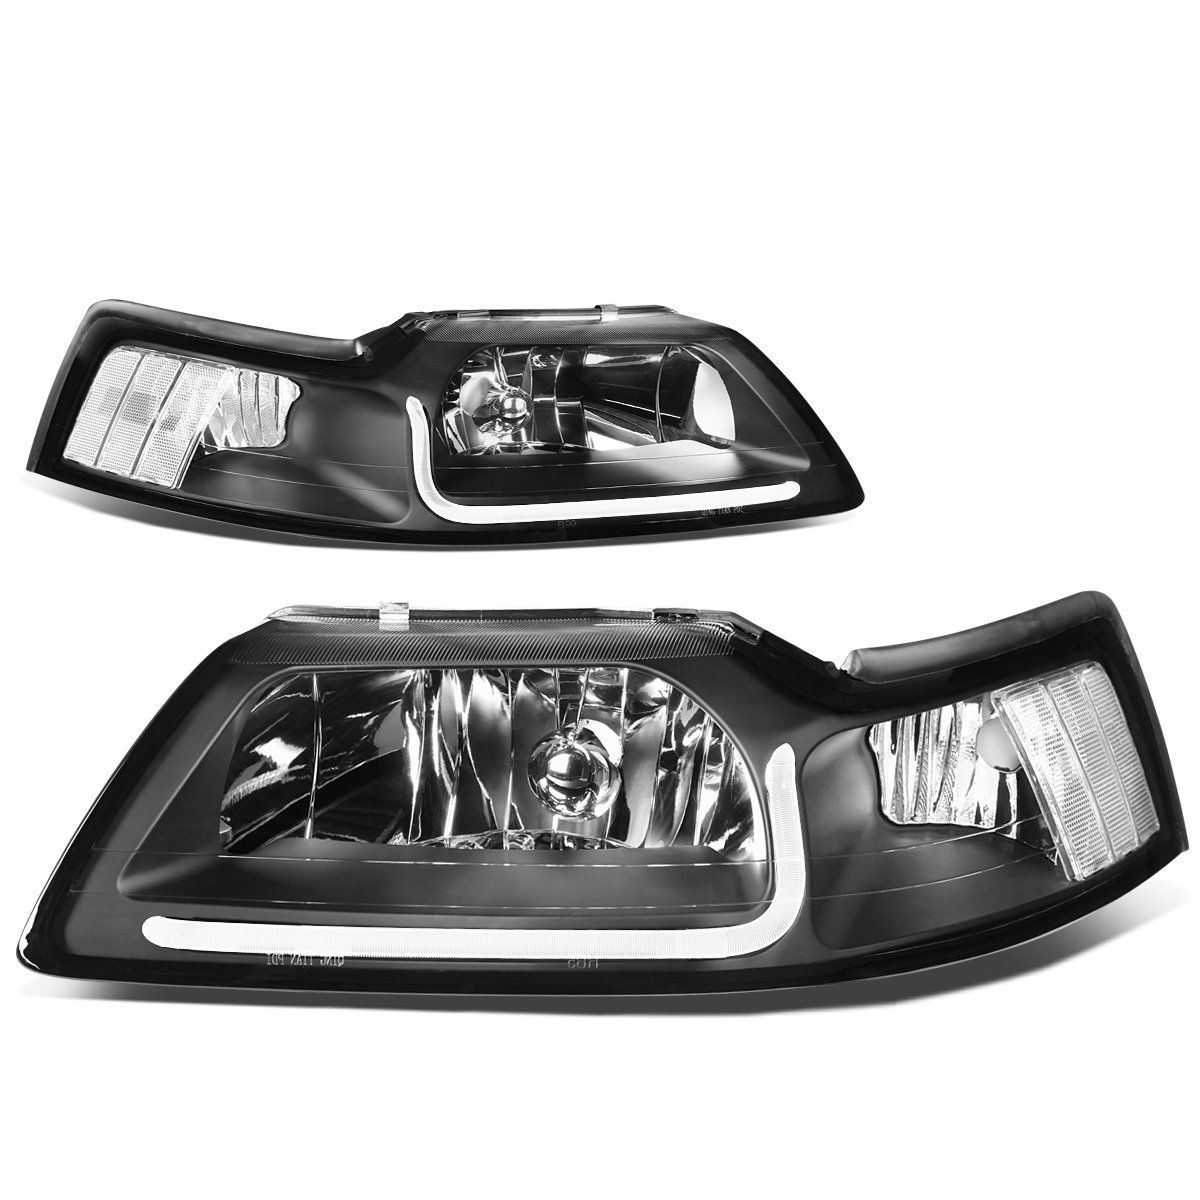 99-04 Ford Mustang LED DRL Bar Headlights - Black / Clear | 1980 Ford Mustang Headlamp Wiring |  | ProTuningLab.com